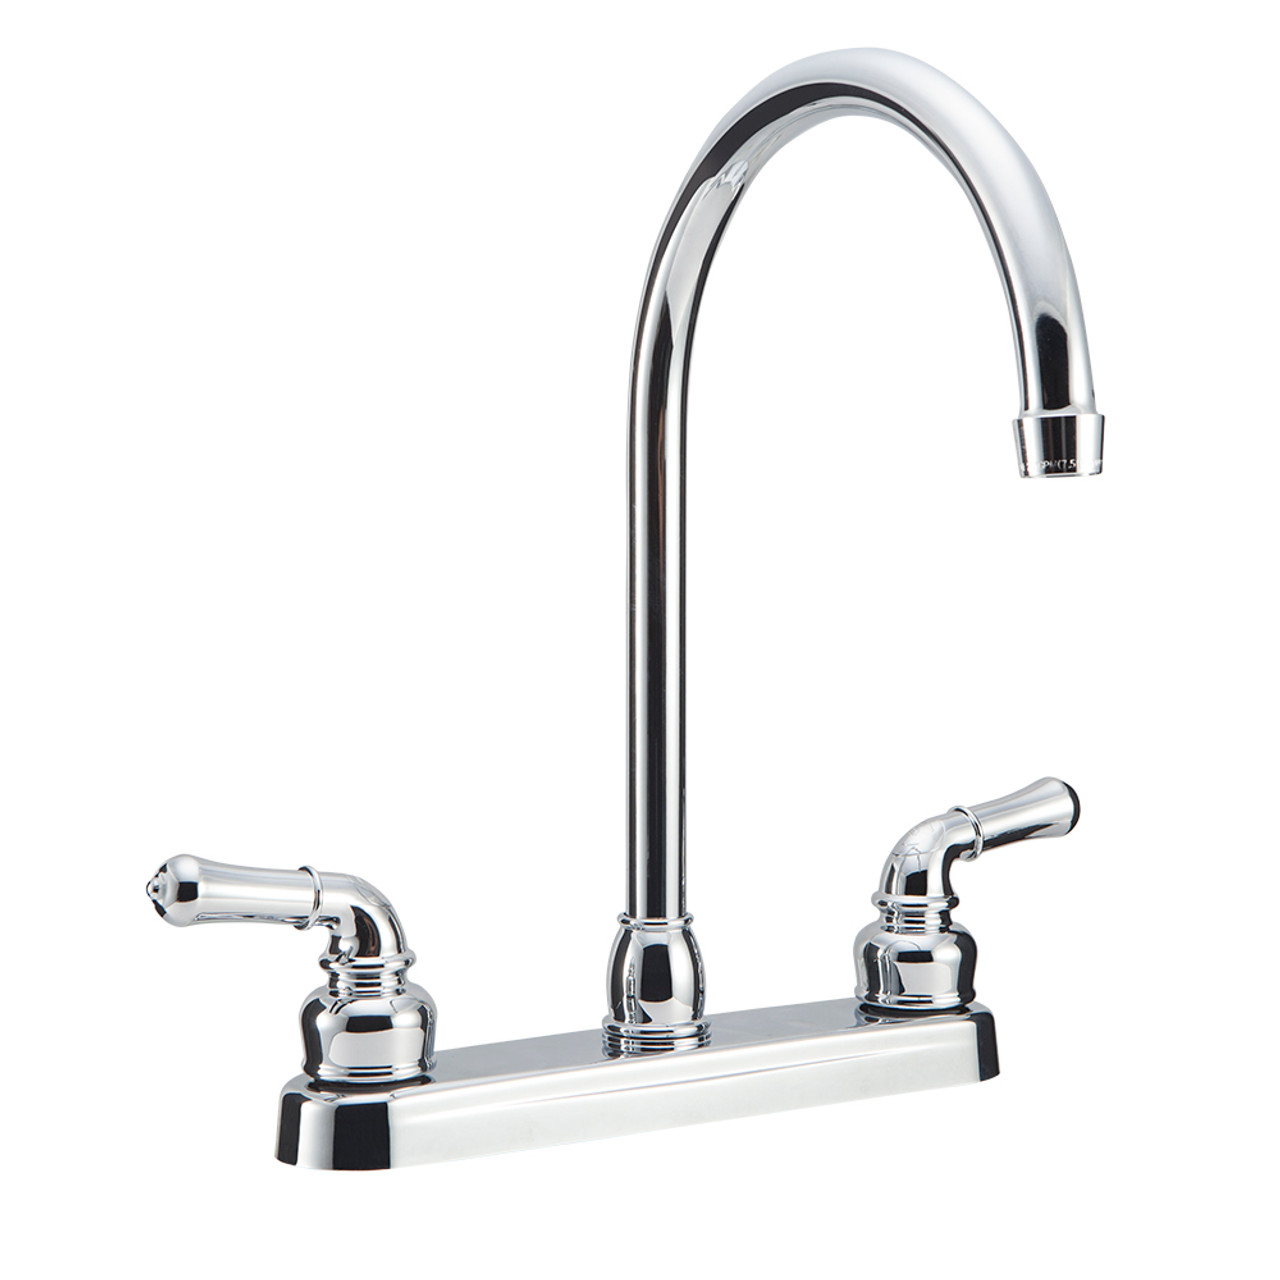 shop for j-spout rv kitchen faucets| durafaucet